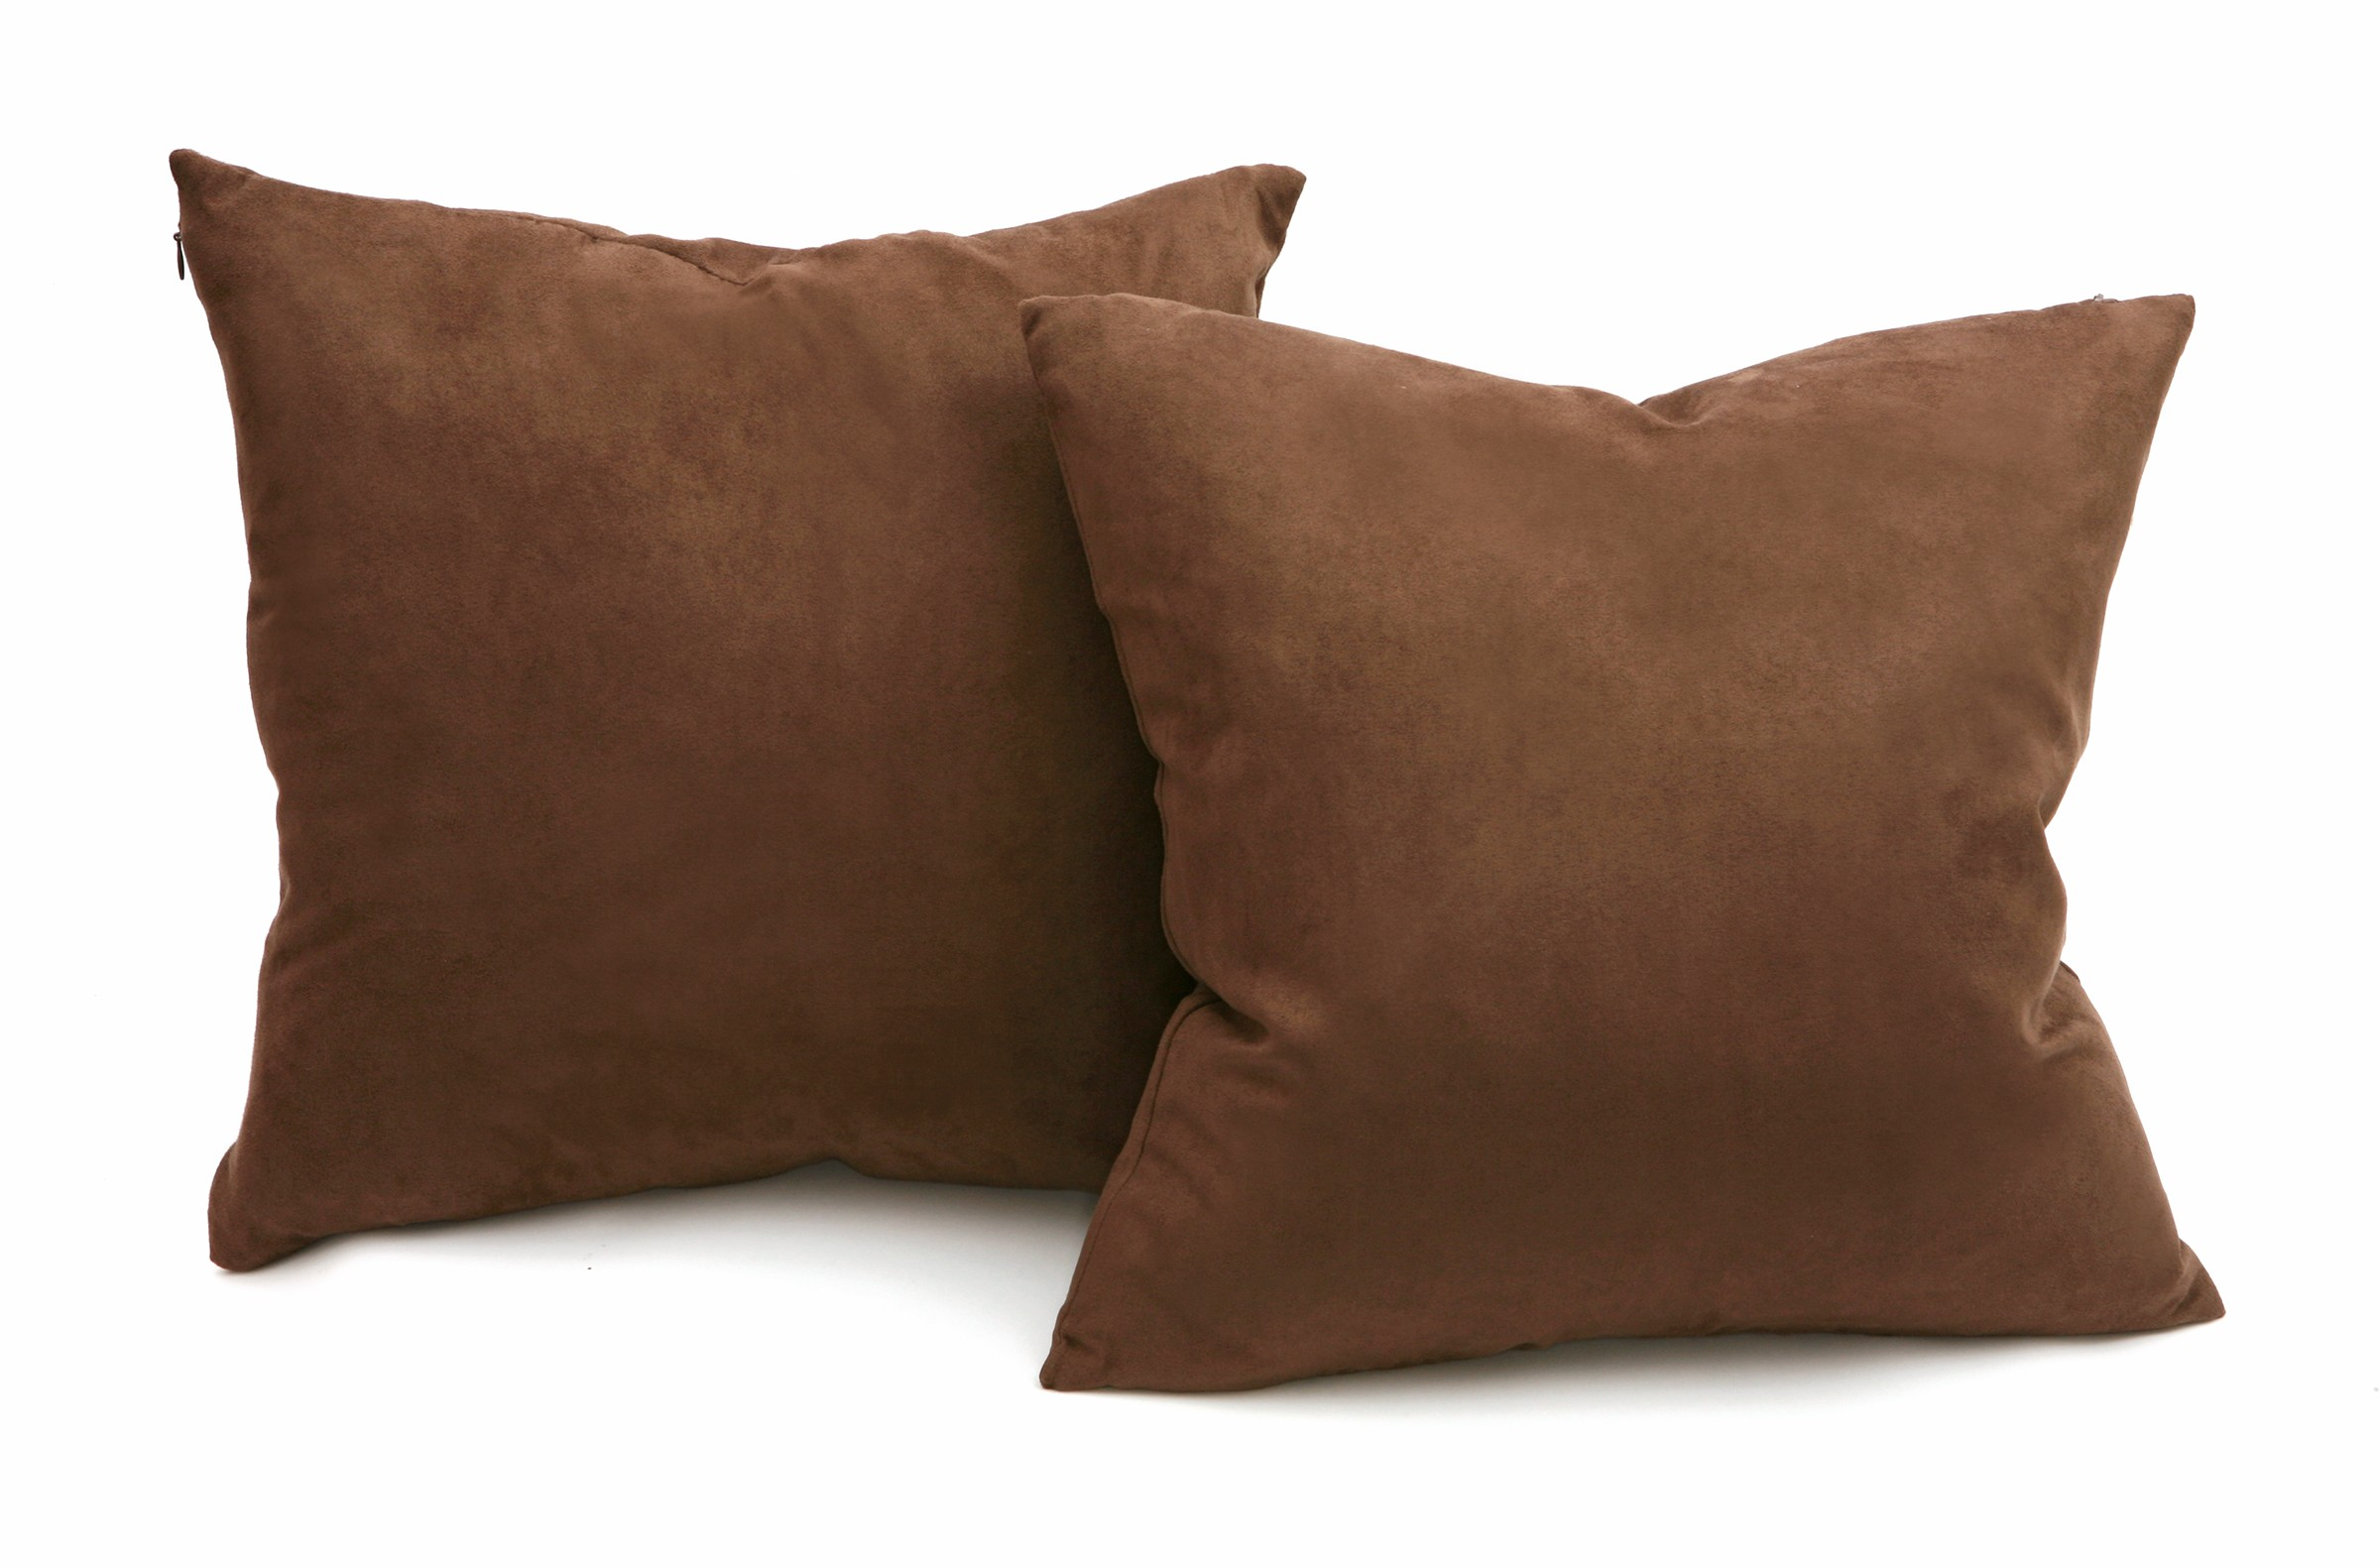 Down Throw Pillows For Couch : Chocolate Microsuede Couch Pillows / Sets of Two Throw Pillows, 18-Inch-by-18-Inch- Decorative ...